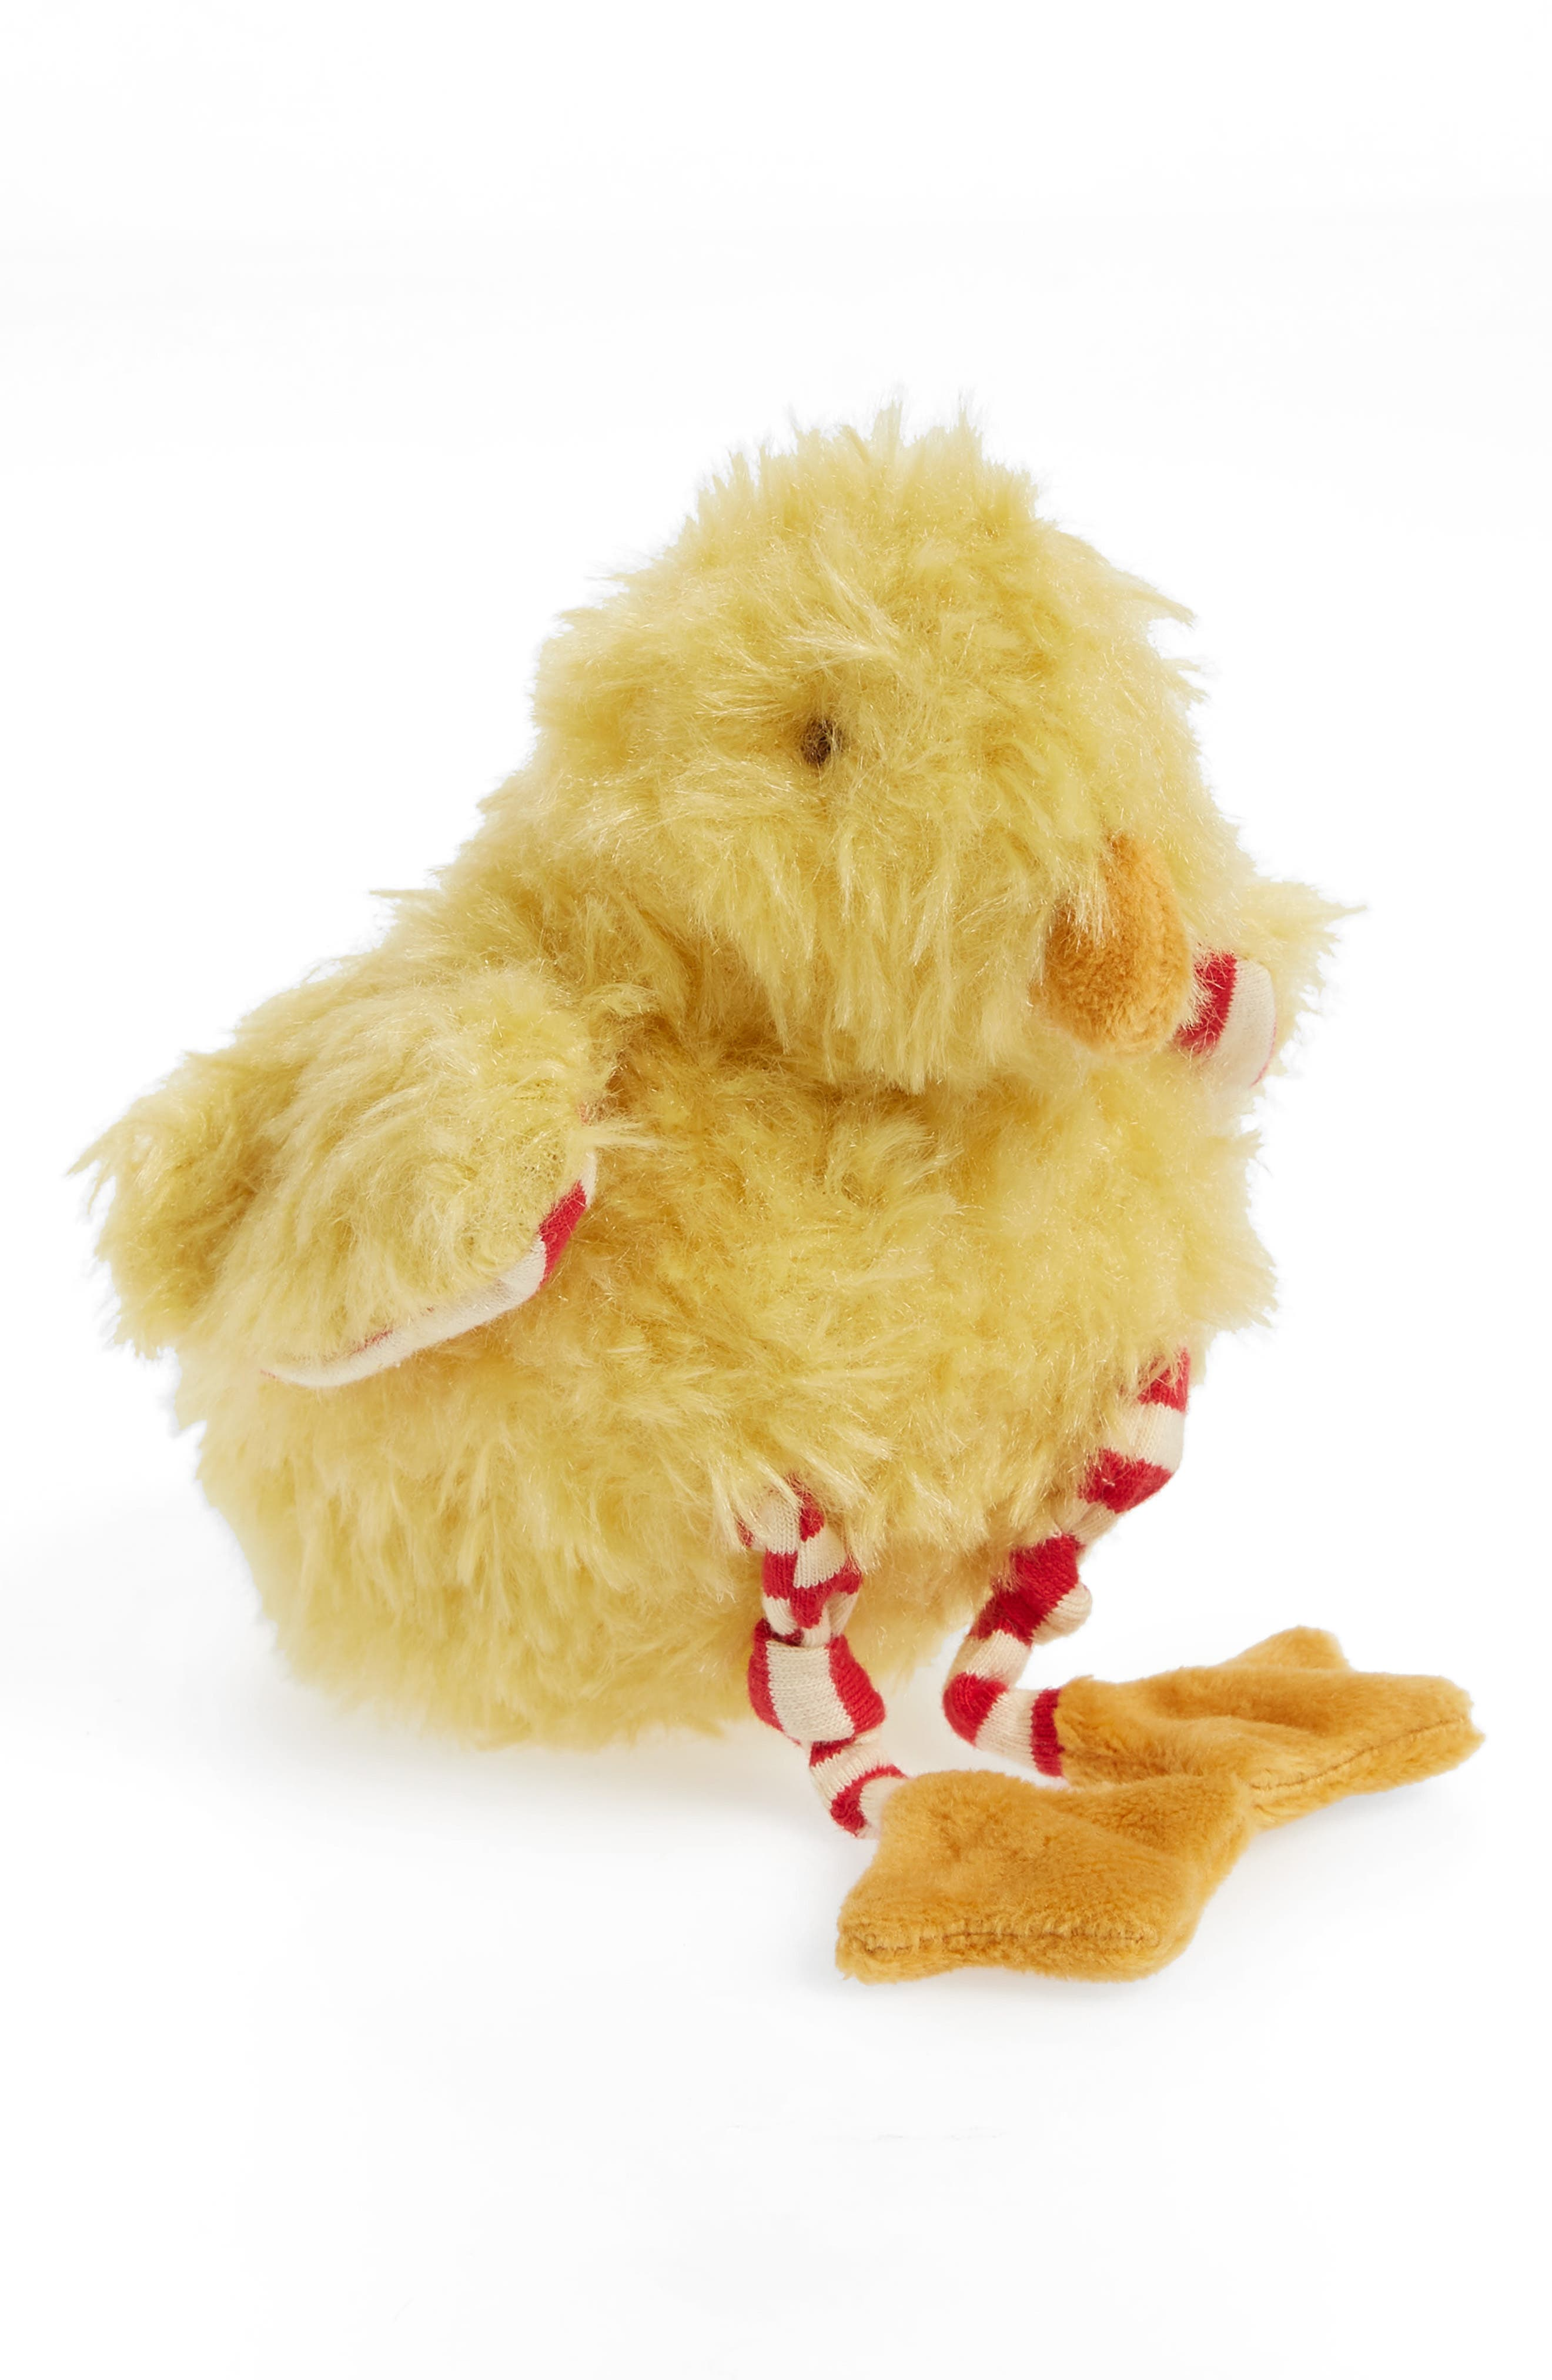 Clucky Chick Stuffed Animal,                         Main,                         color, Mustard Yellow